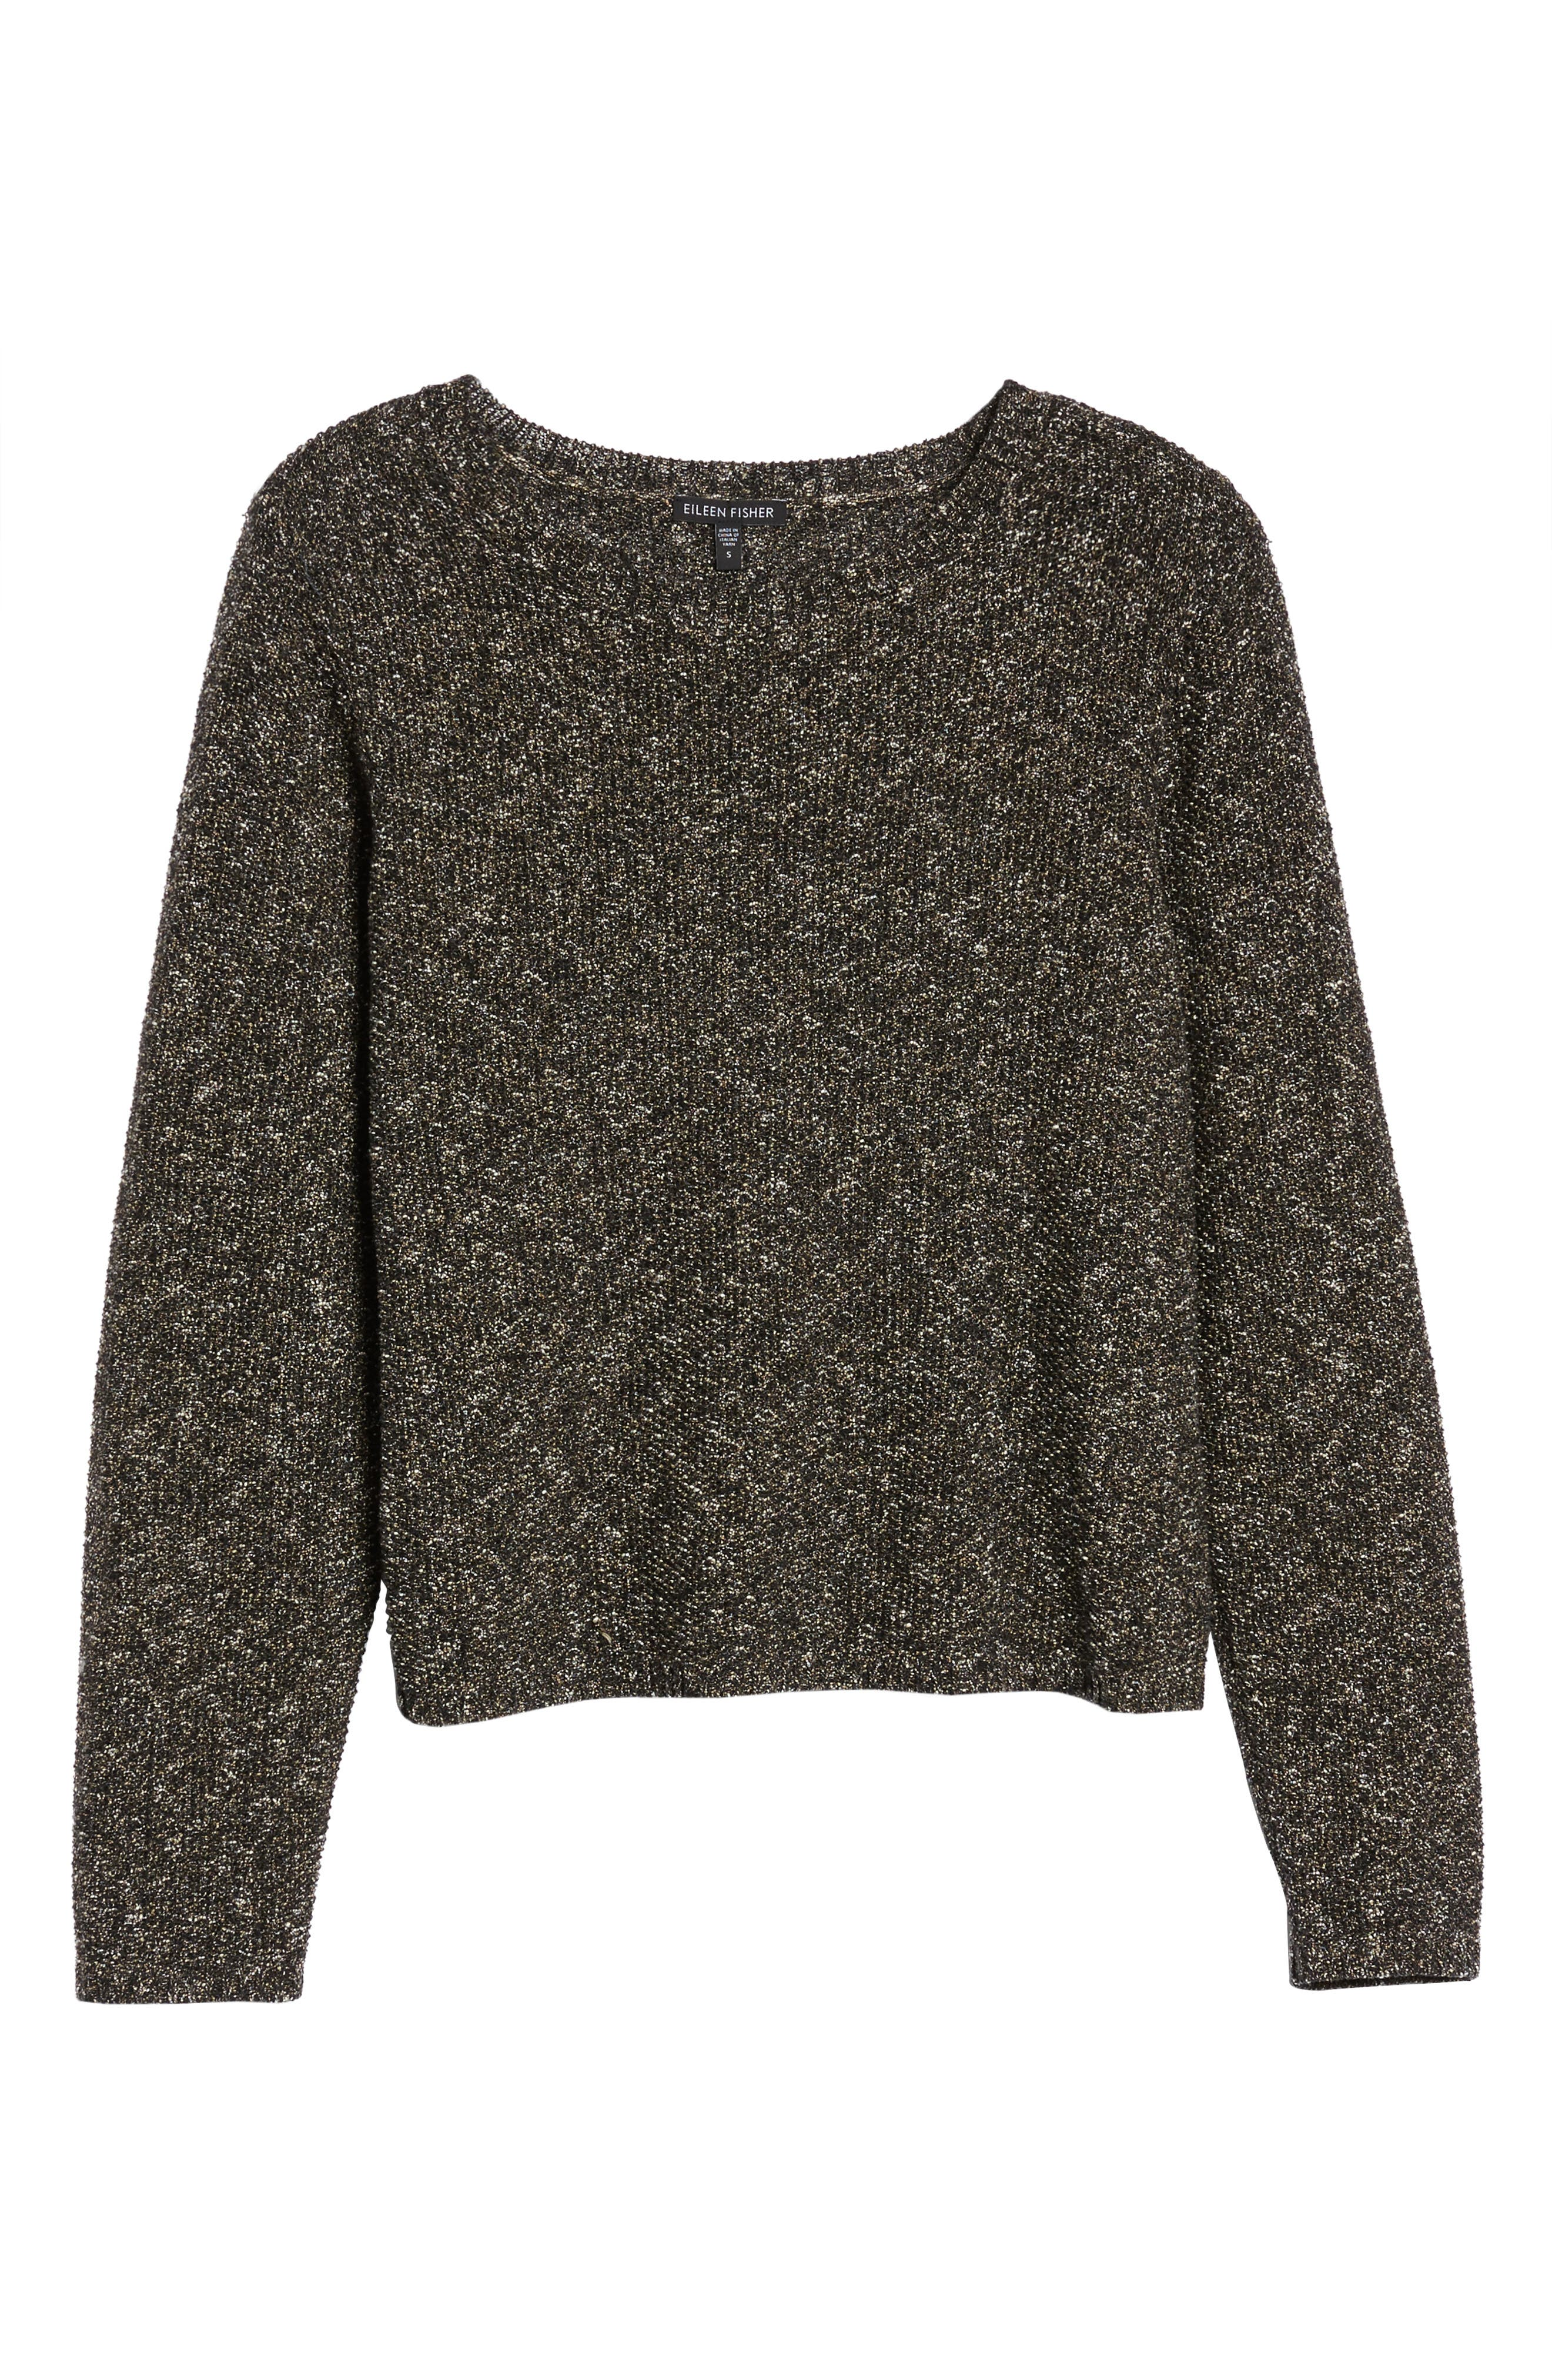 Tweed Knit Sweater,                             Alternate thumbnail 6, color,                             Black